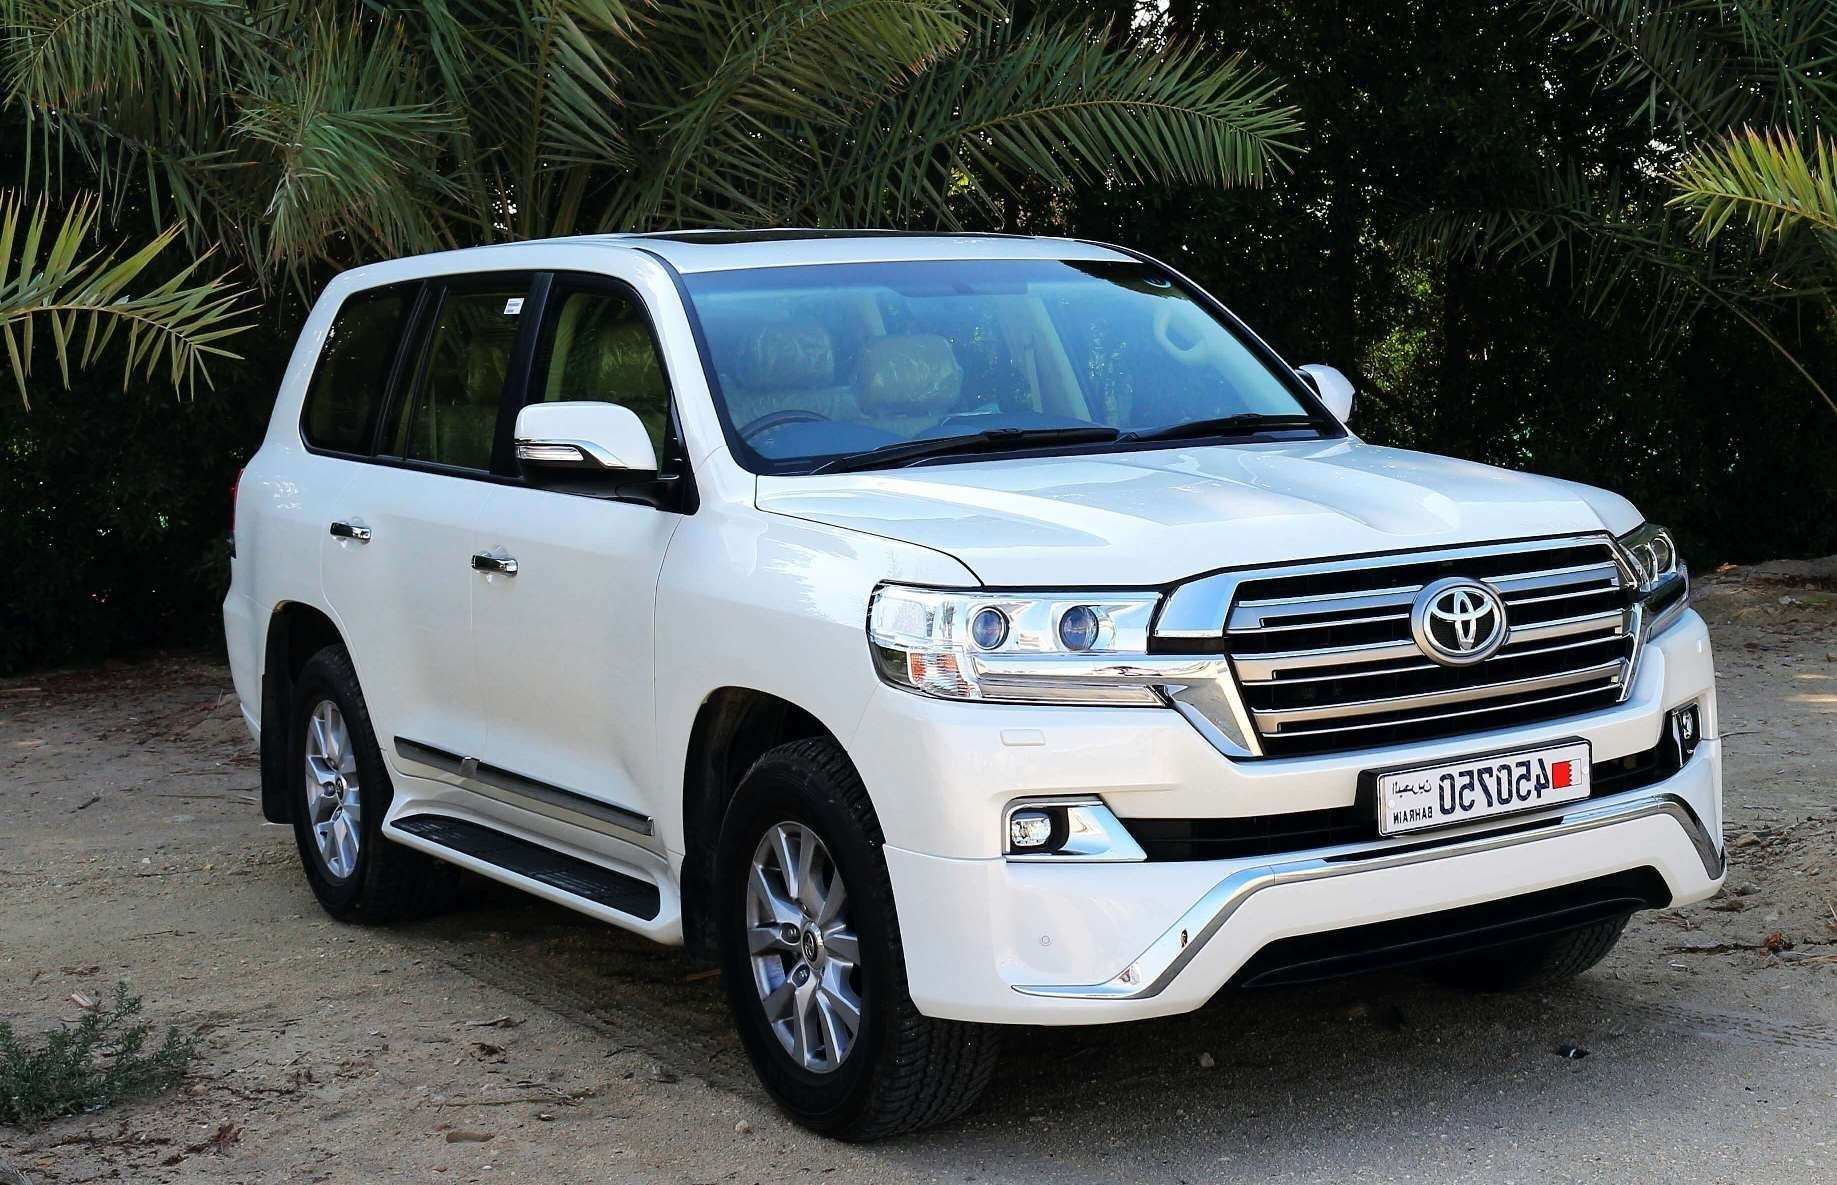 45 New 2019 Toyota Land Cruiser 300 Series Picture with 2019 Toyota Land Cruiser 300 Series